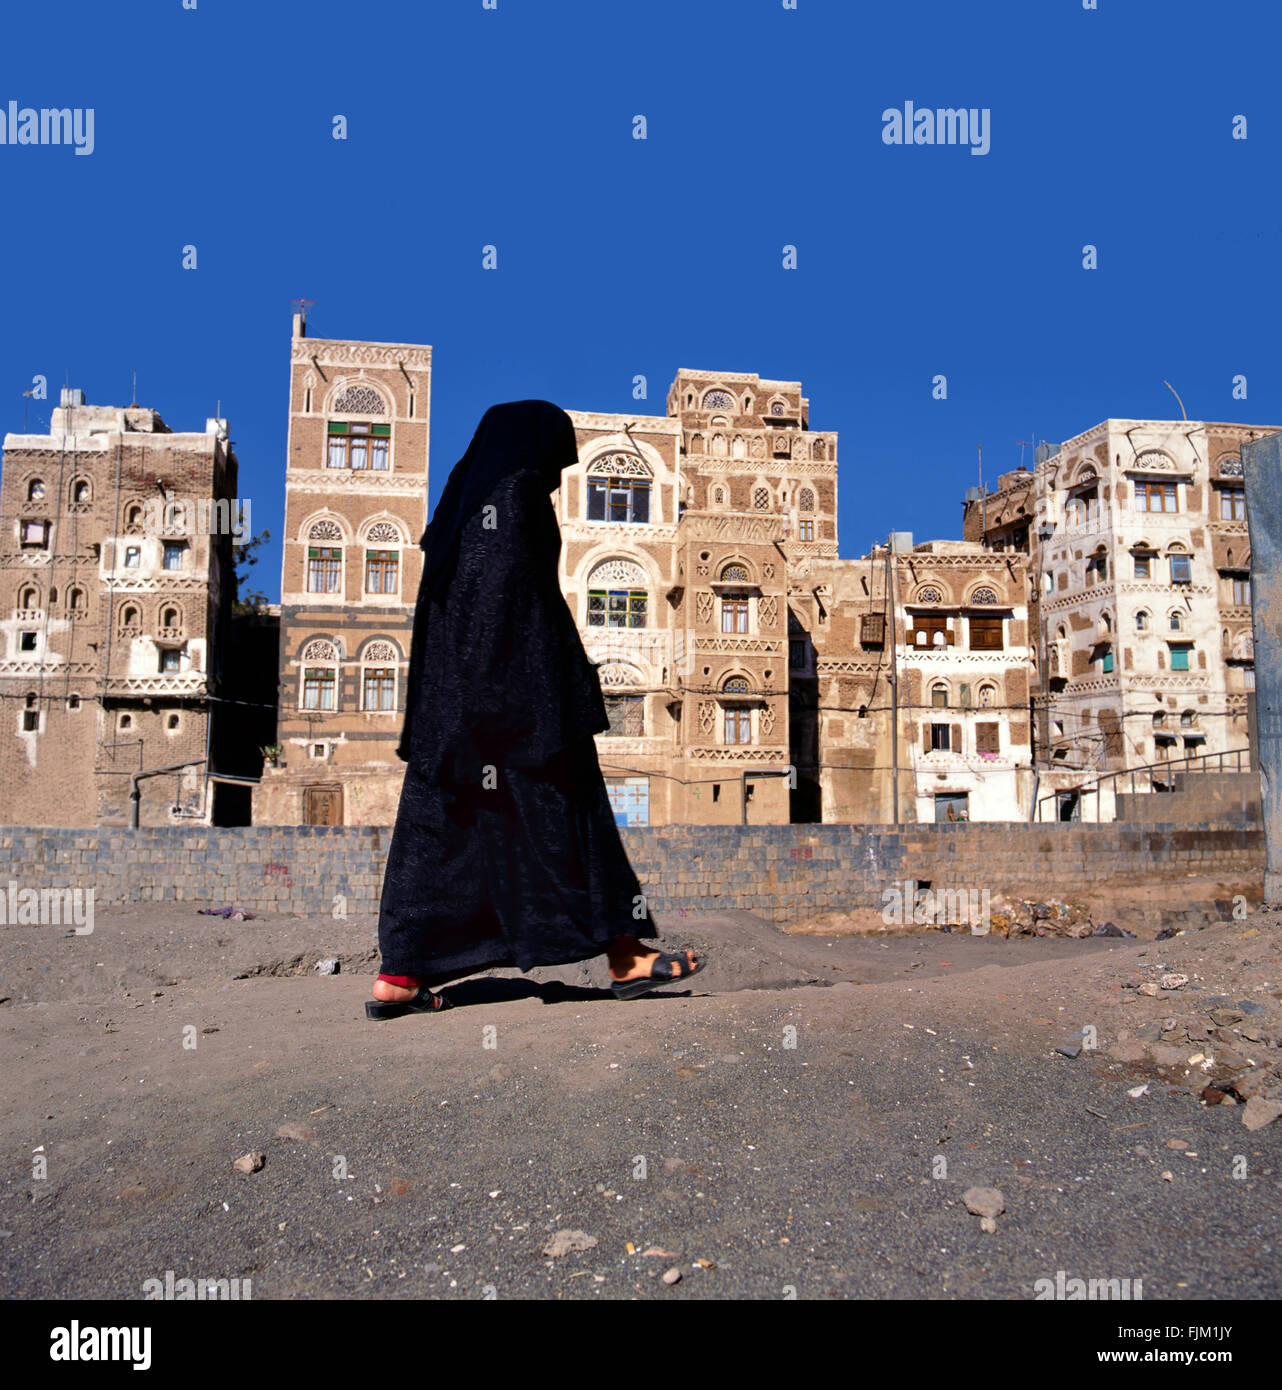 A veiled Muslim woman walks on a Sana a street, Yemen.At background typical Yemen houses. - Stock Image